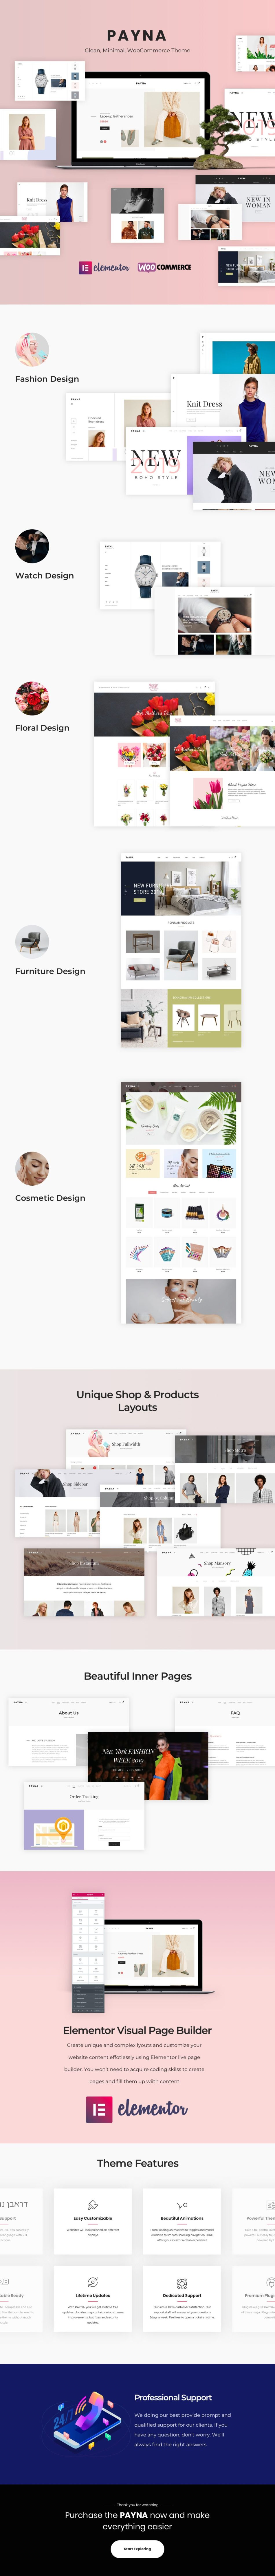 Payna - Clean and minimal WooCommerce theme - 2